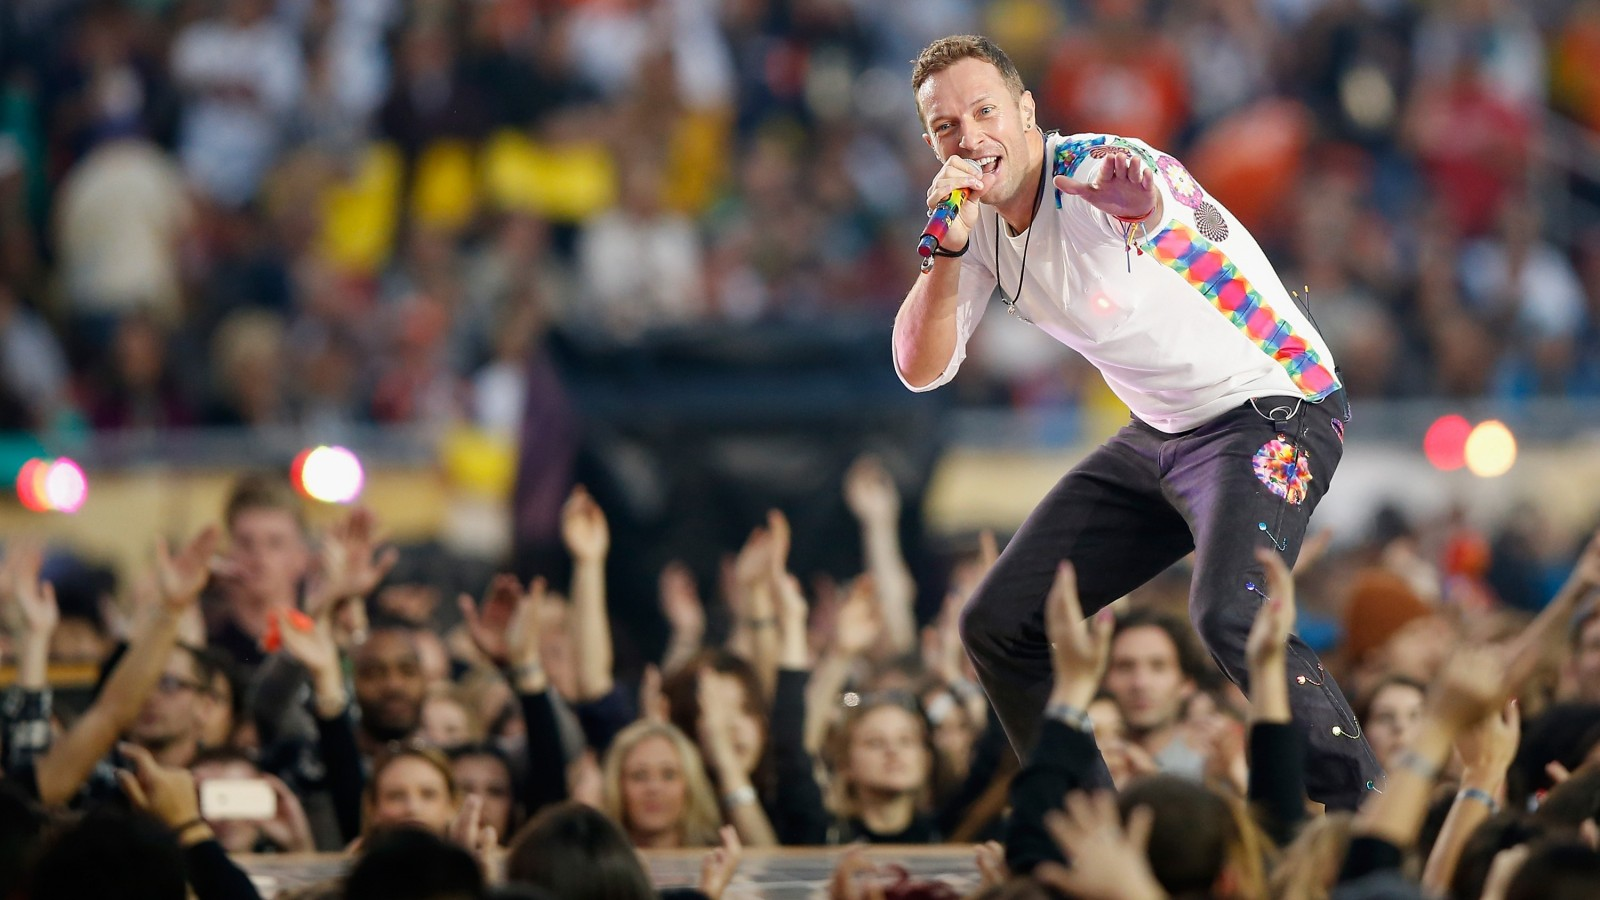 Buy a VIP package and get a seat up close at a Coldplay concert. (Getty Images)